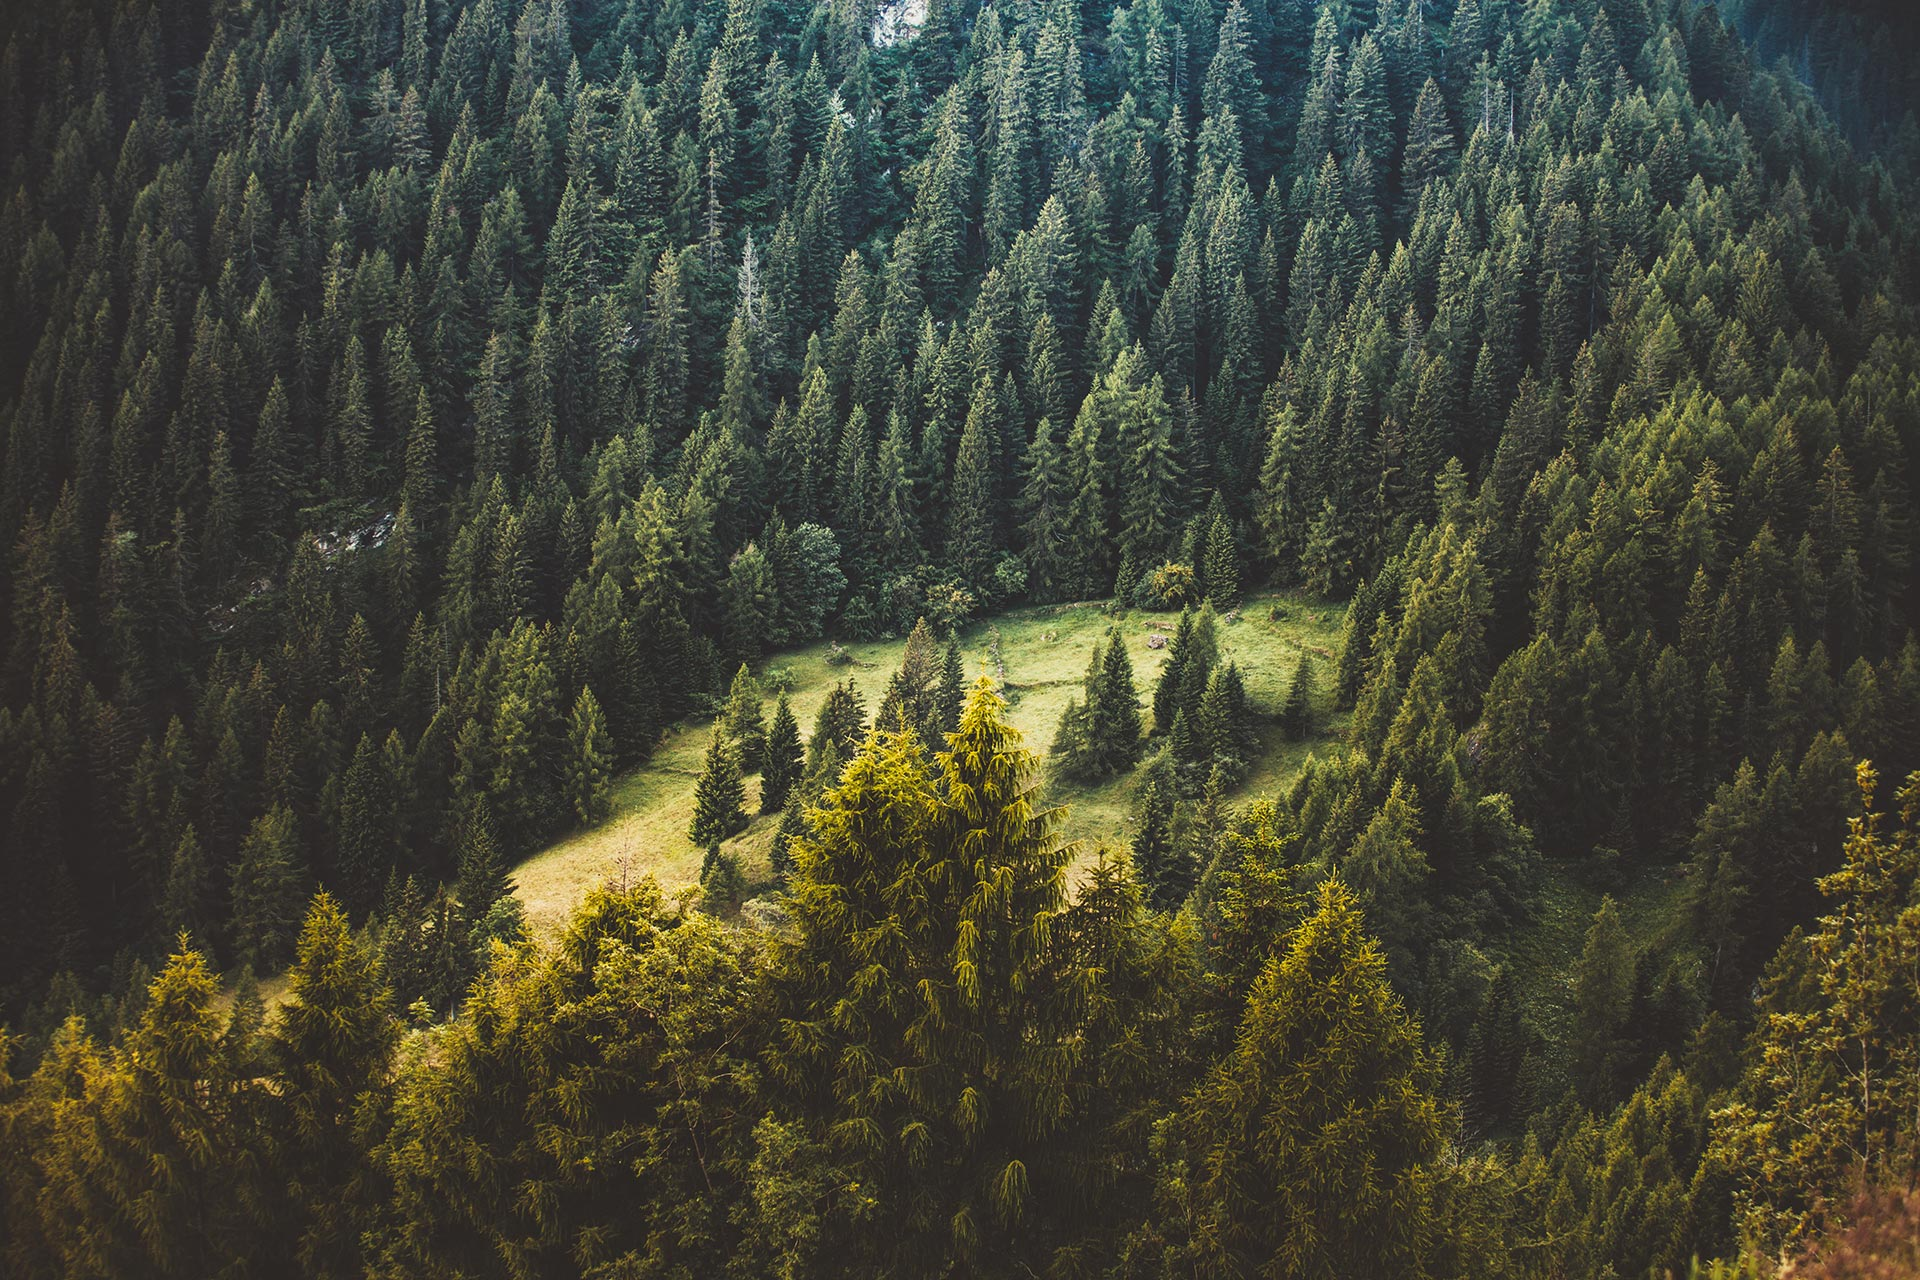 Picture of the forest